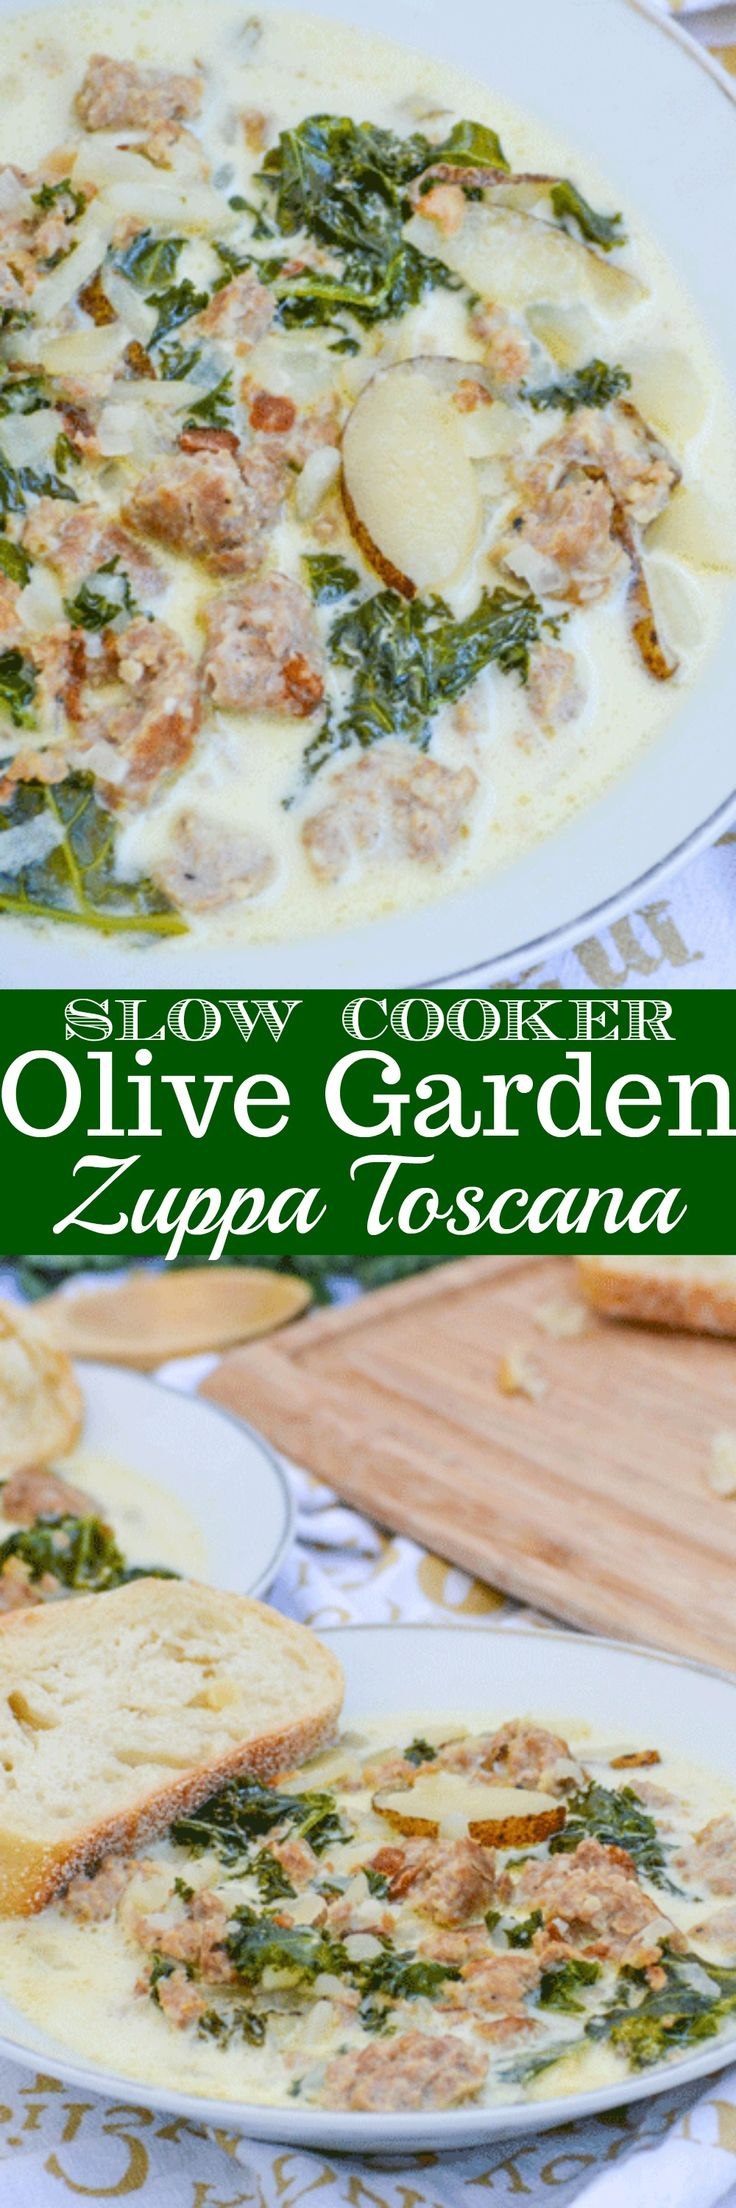 A creamy, cozy rustic soup- this Slow Cooker Copy Cat Olive Garden Zuppa Toscana is the best way to soothe anything that ails you. Loaded with spicy Italian sausage, tender potato slices, and kale, it's a full meal for the whole family when served with a slice of hearty bread. We[Read more]